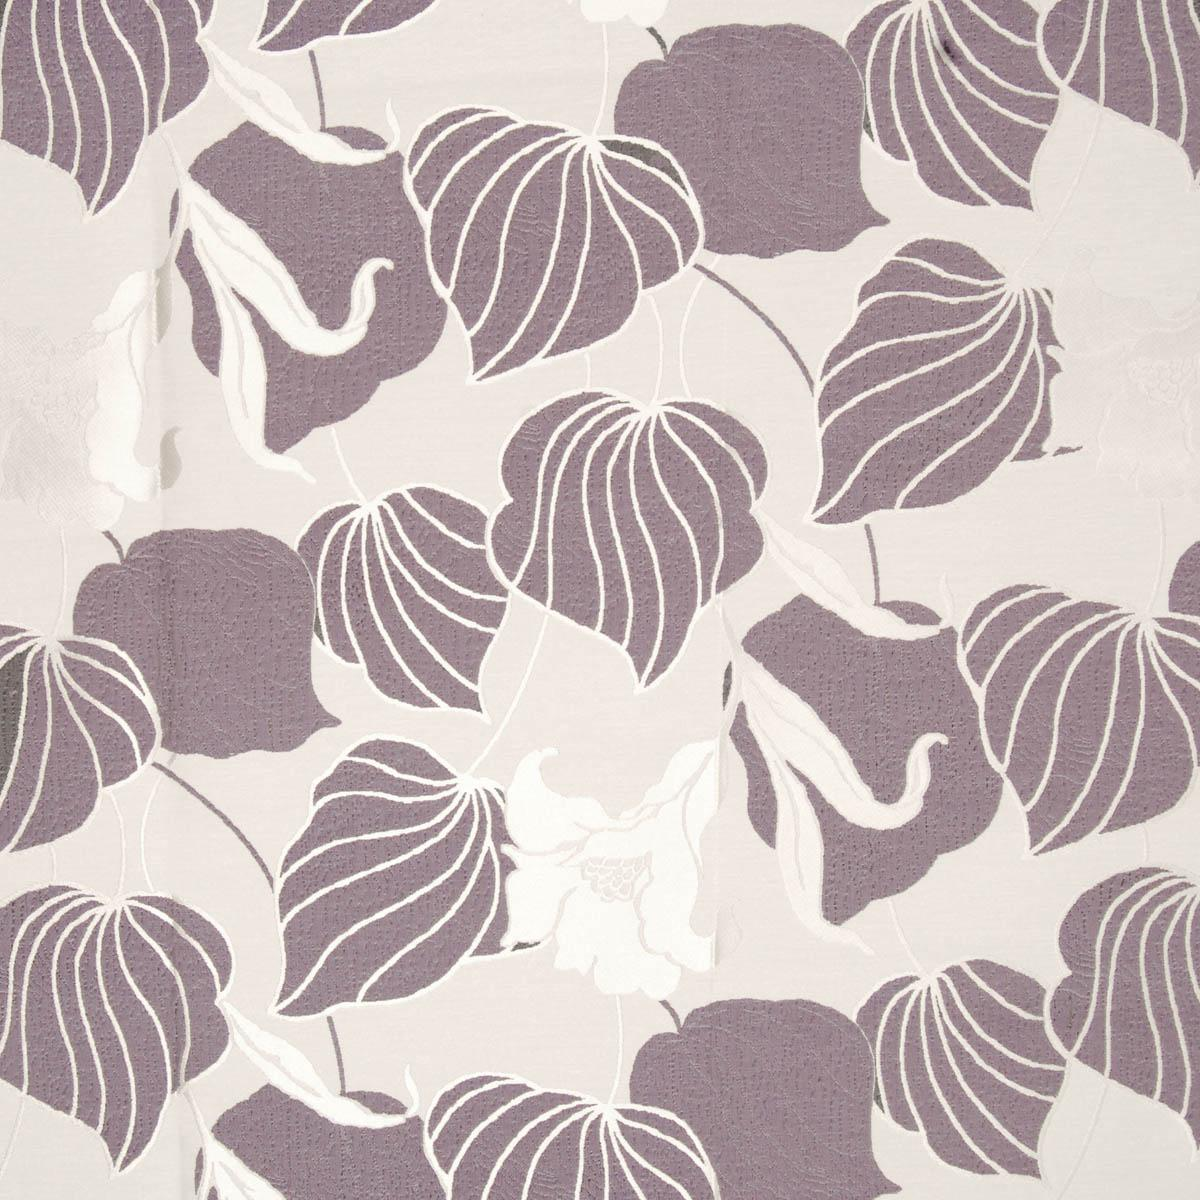 Stockists of Heather Lily Damask Curtain Fabric